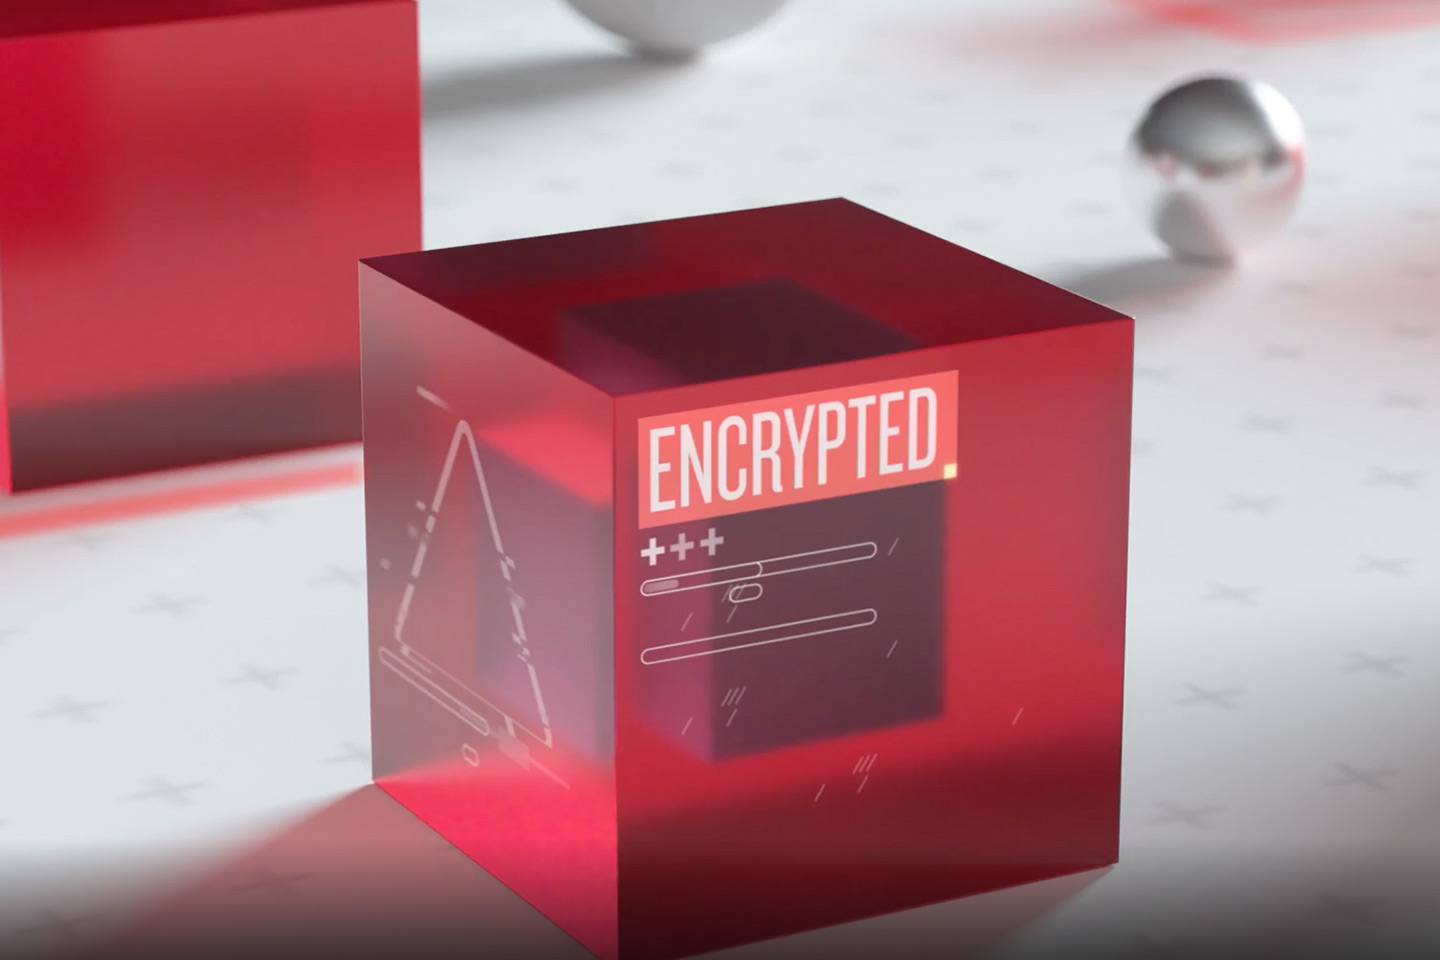 encrypted cube showing level on encryption achieved